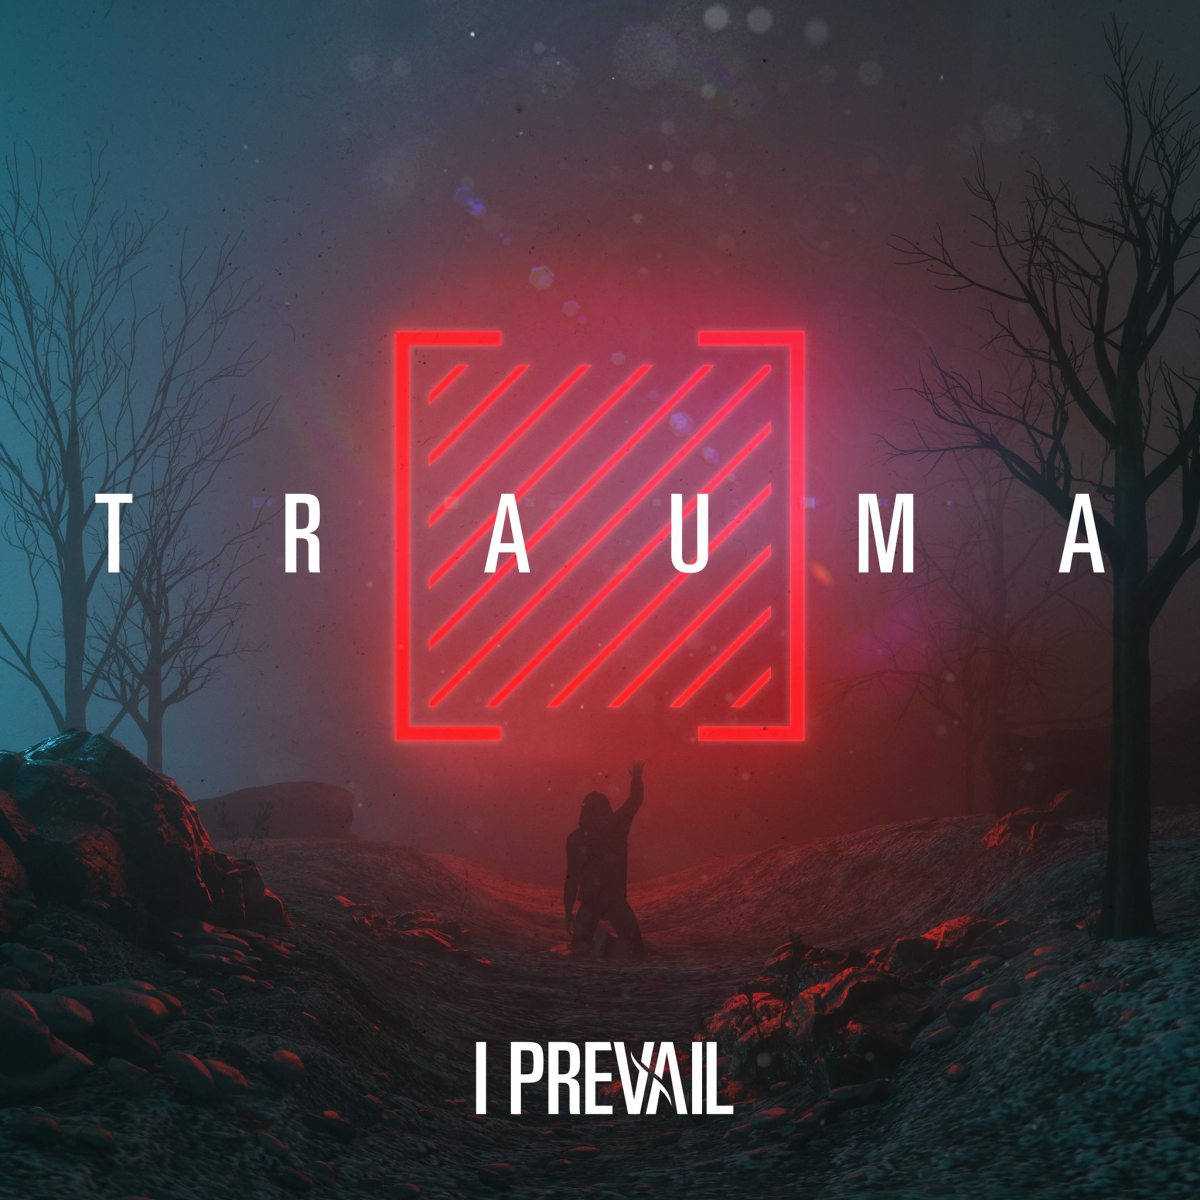 I Prevail - Trauma (Album Review)